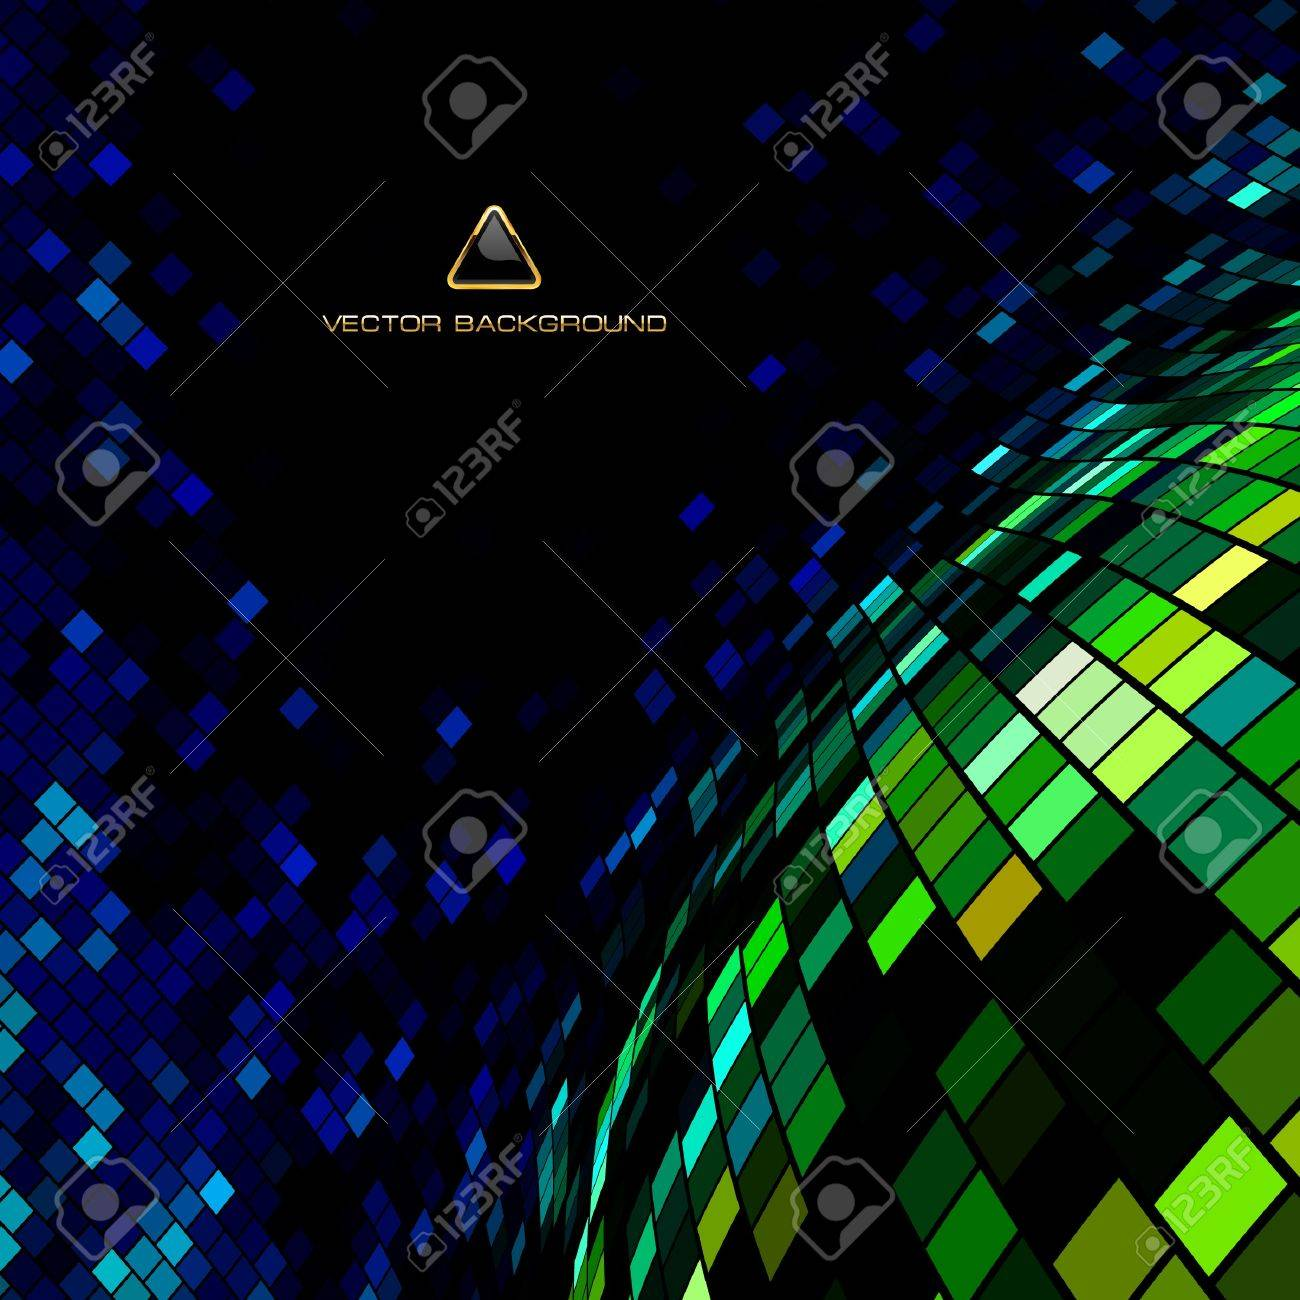 Abstract mosaic background. Stock Vector - 8947776